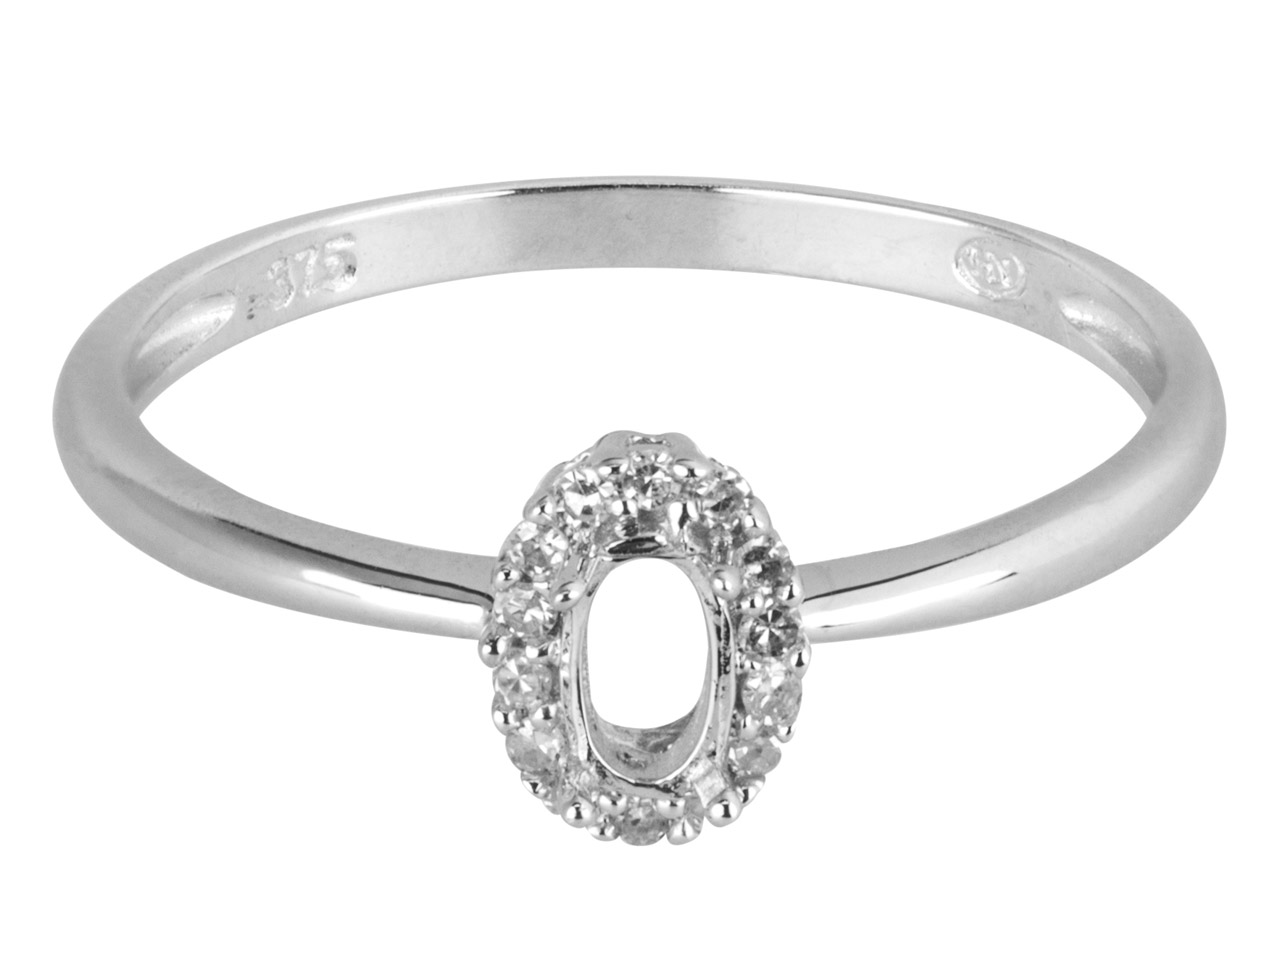 9ct White Semi Set Diamond Ring    Mount Hallmarked 14 Round Total    0.07ct Centre To Accommodate 5x3mm Oval